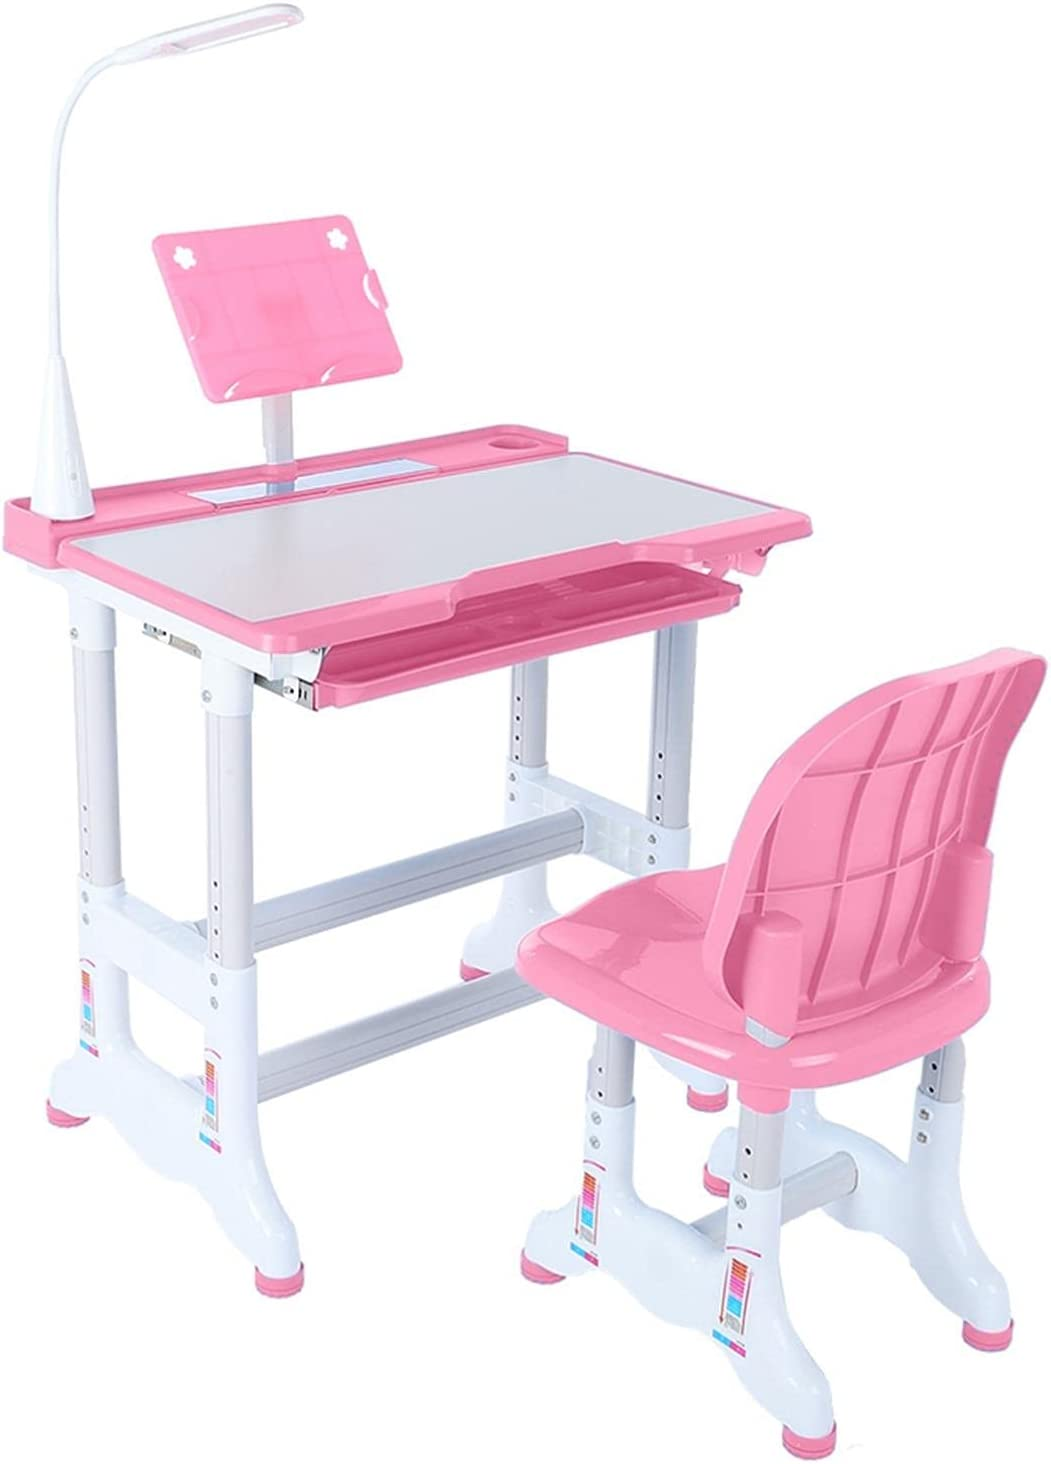 Max Limited time sale 90% OFF FartPeach School Desk for Kids - 8-12 Ki Years Height Adjustable